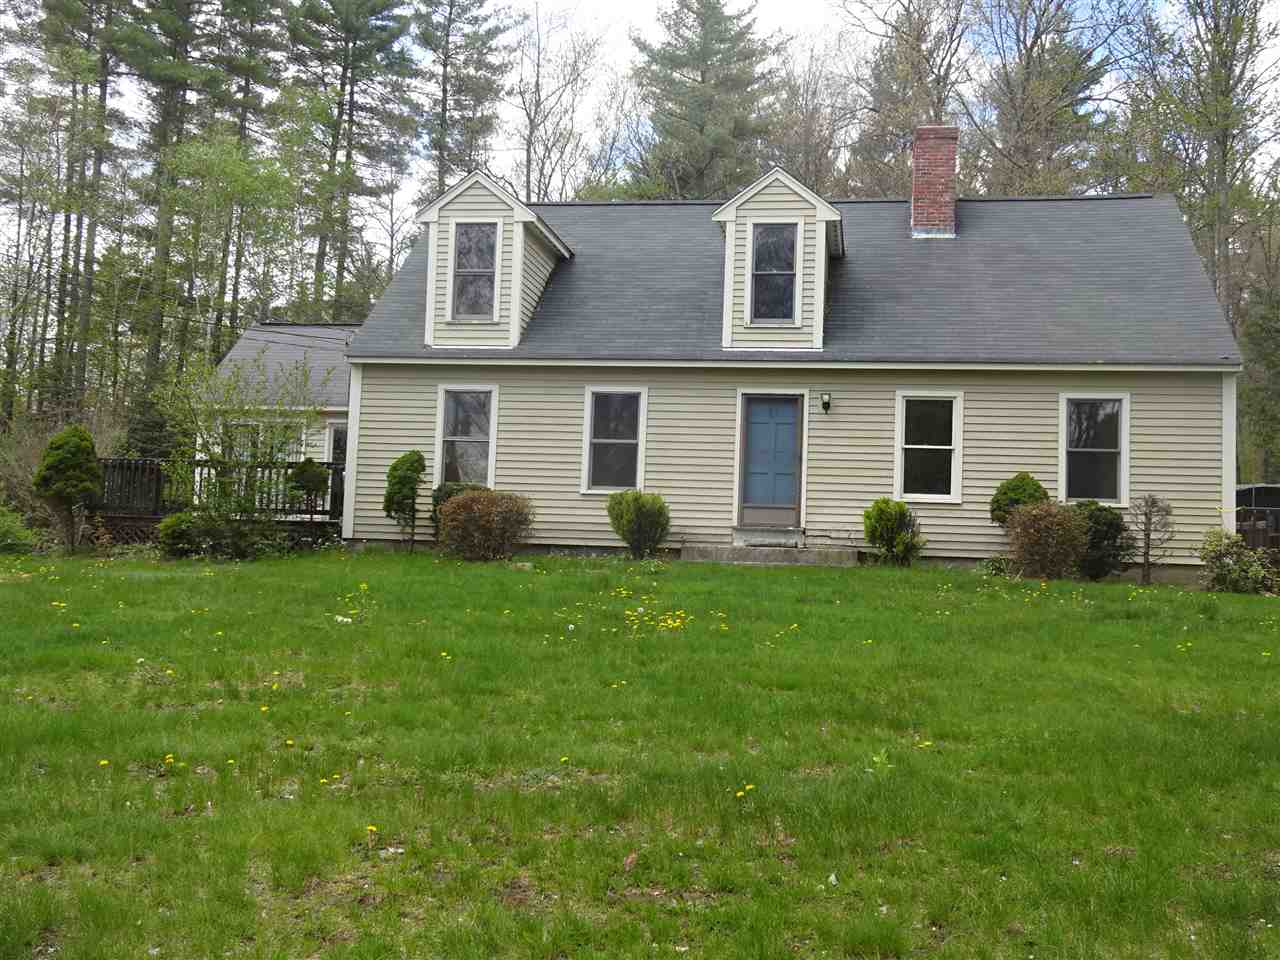 Photo of 63 Wilson Hill Road Merrimack NH 03054